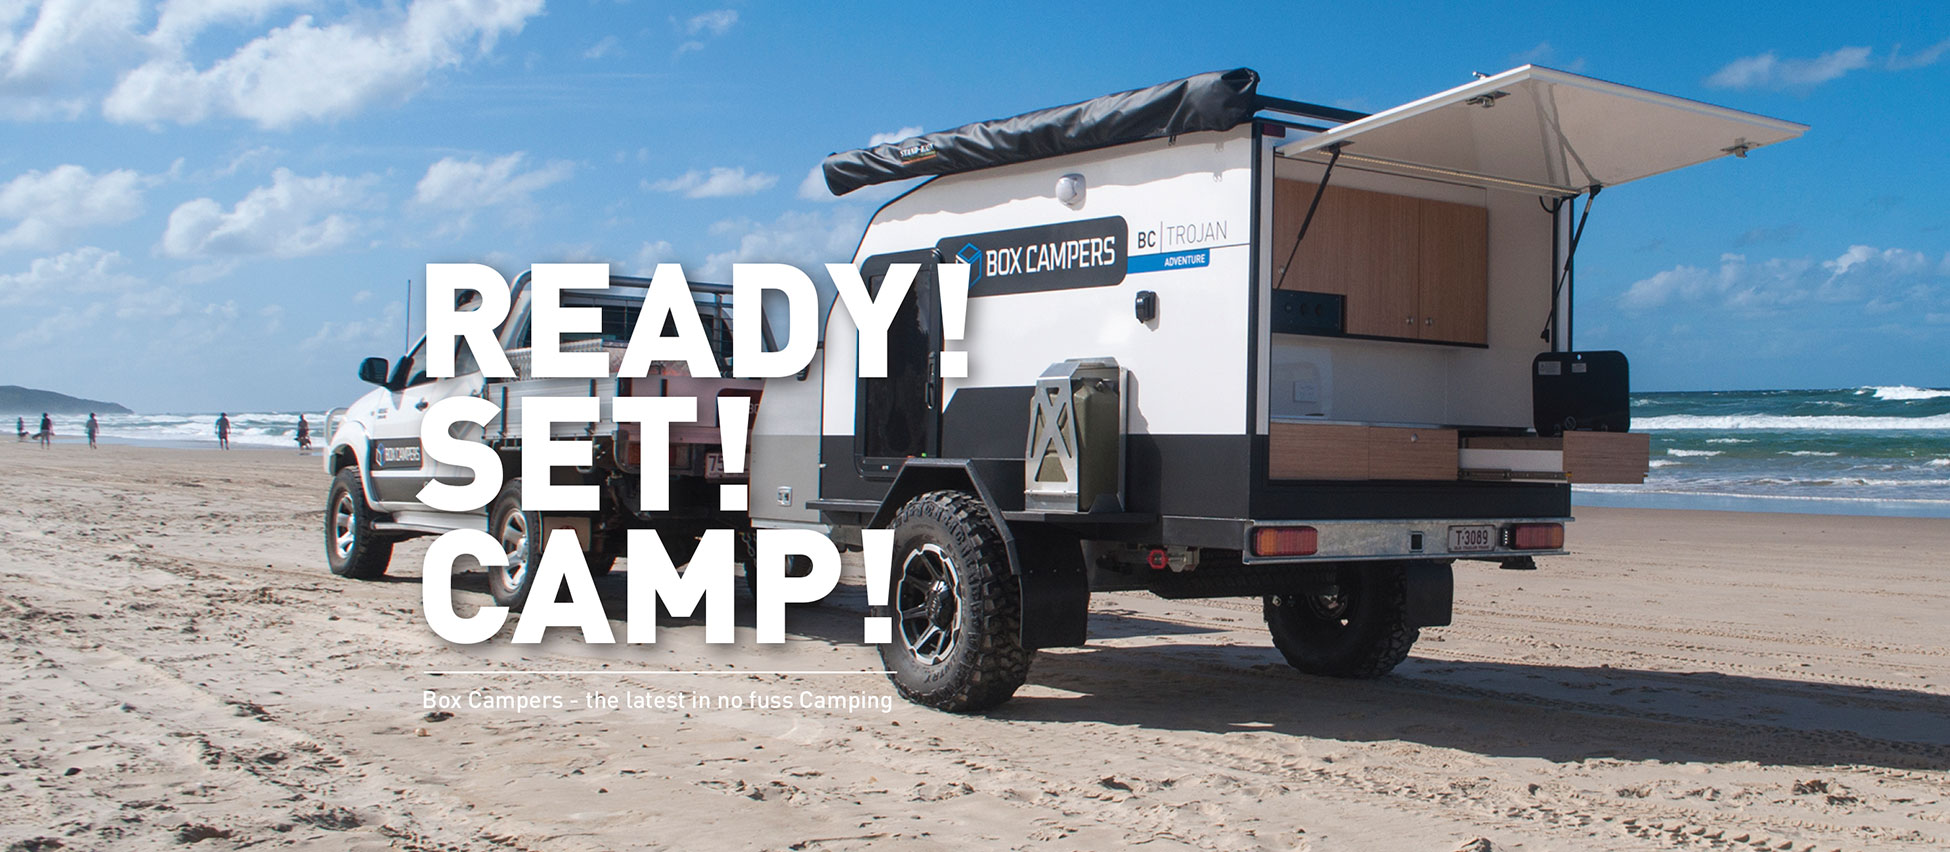 Ready! Set! Camp!  Box Campers - The latest in no fuss camping